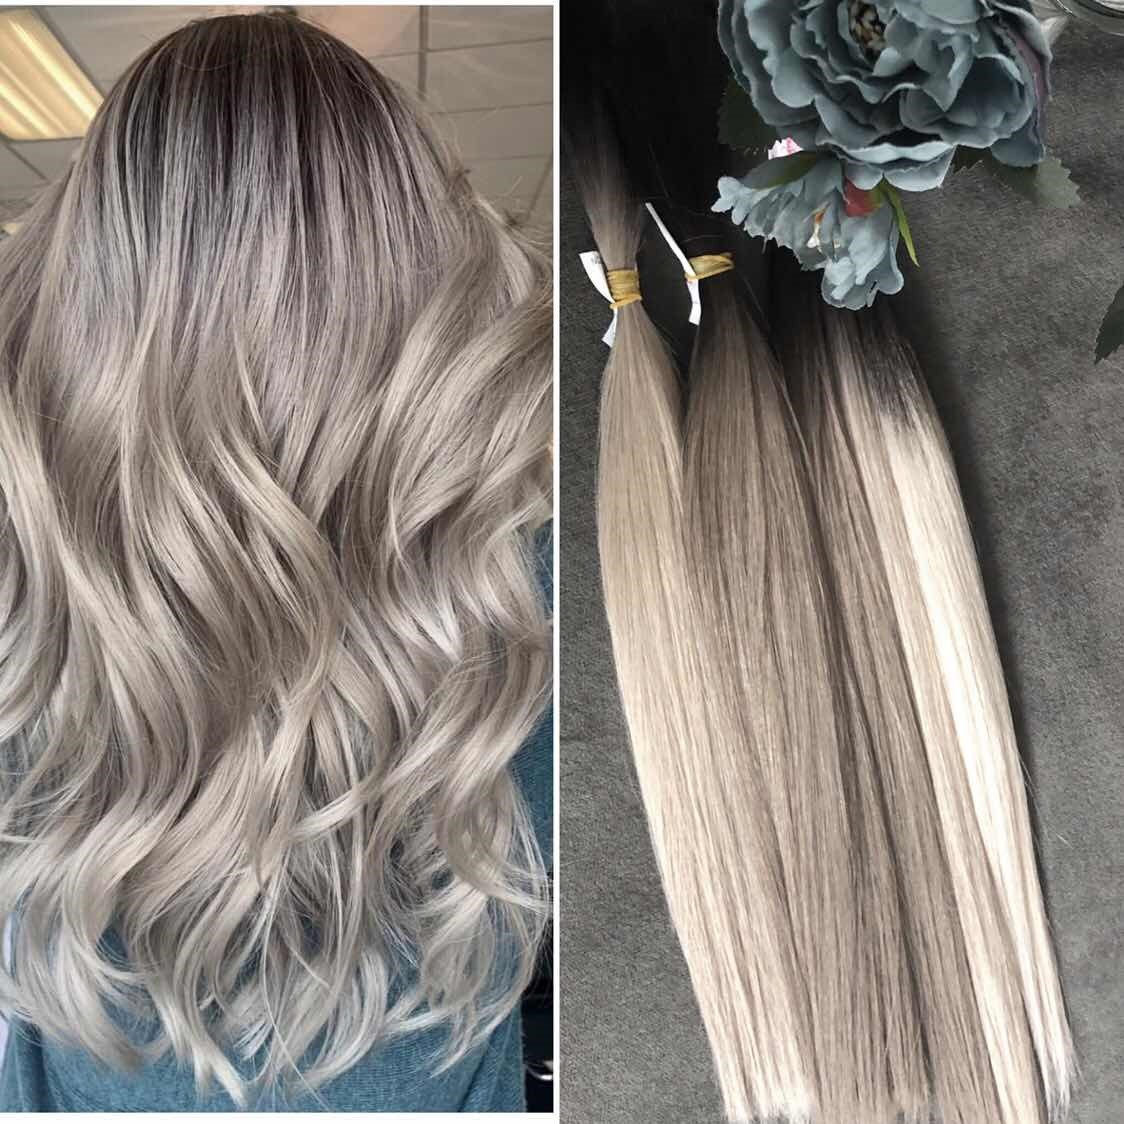 OMBRE BALAYAGE HAIRSTYLE IDEAS FOR LONG HAIR IN 2019